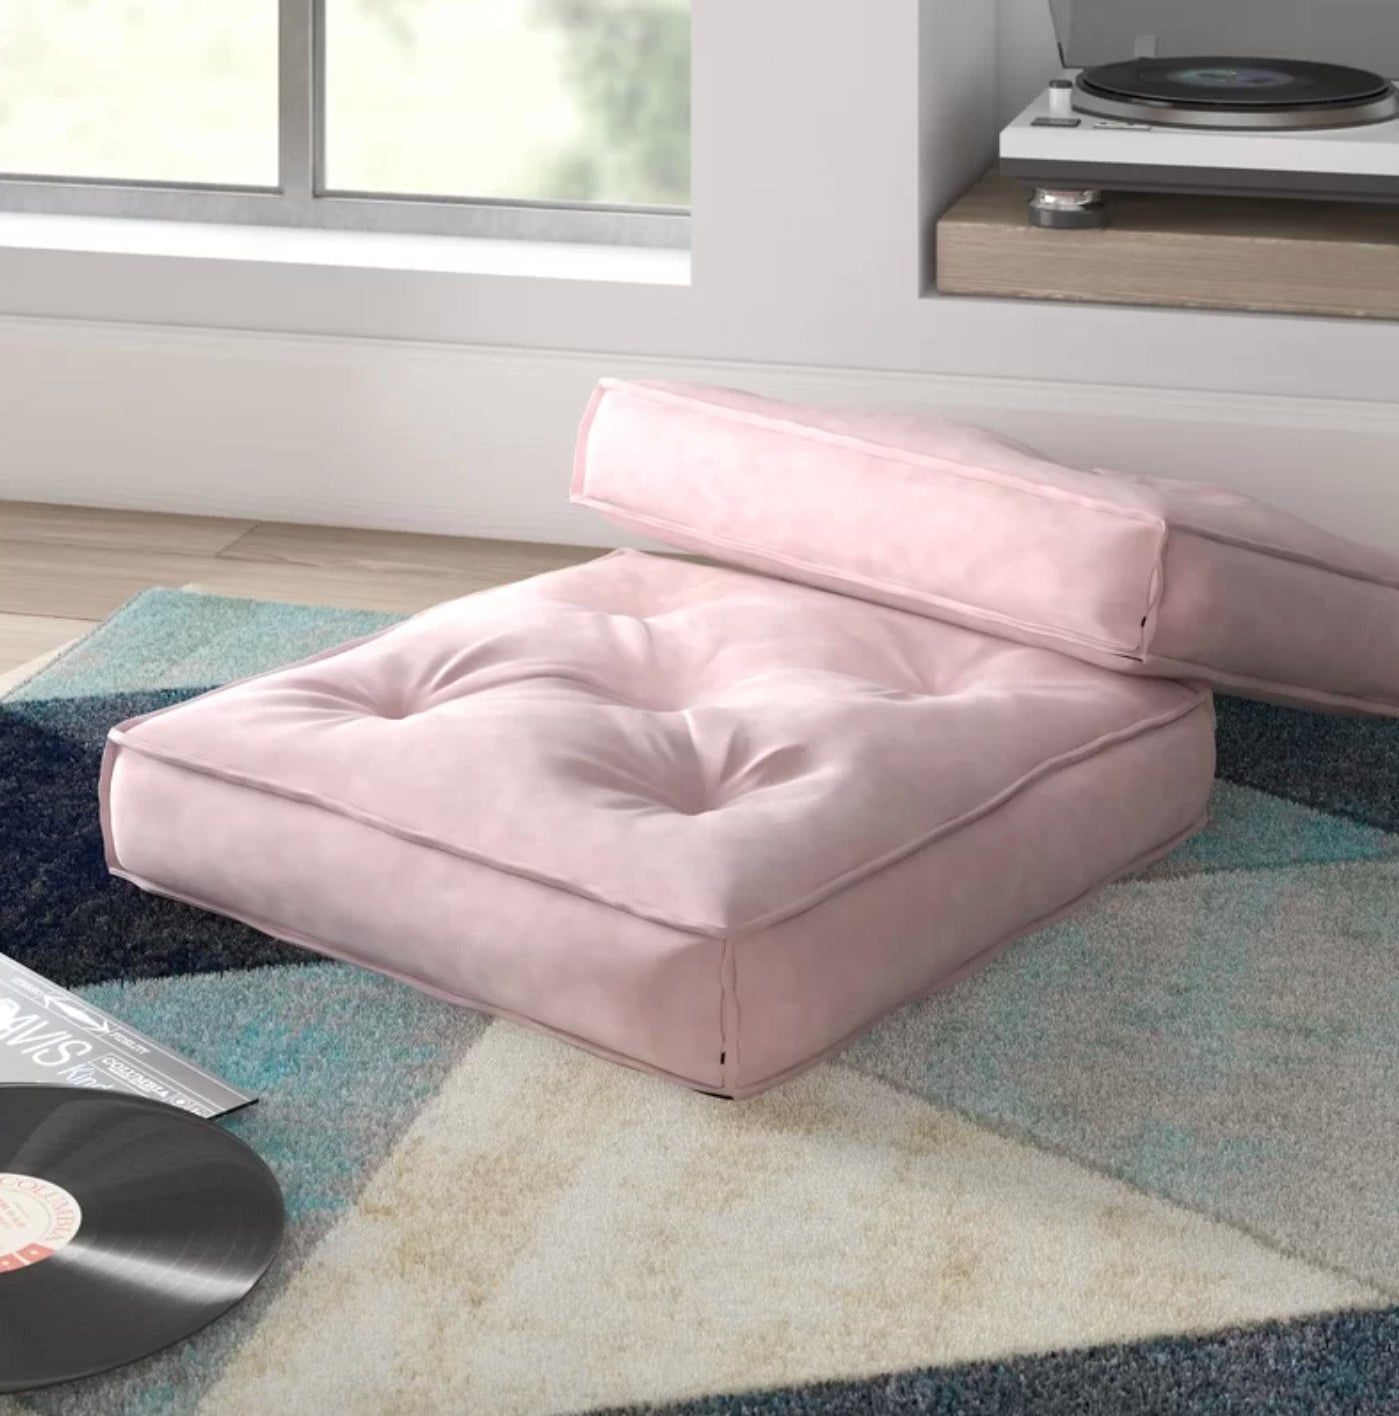 The square floor pillow in blush